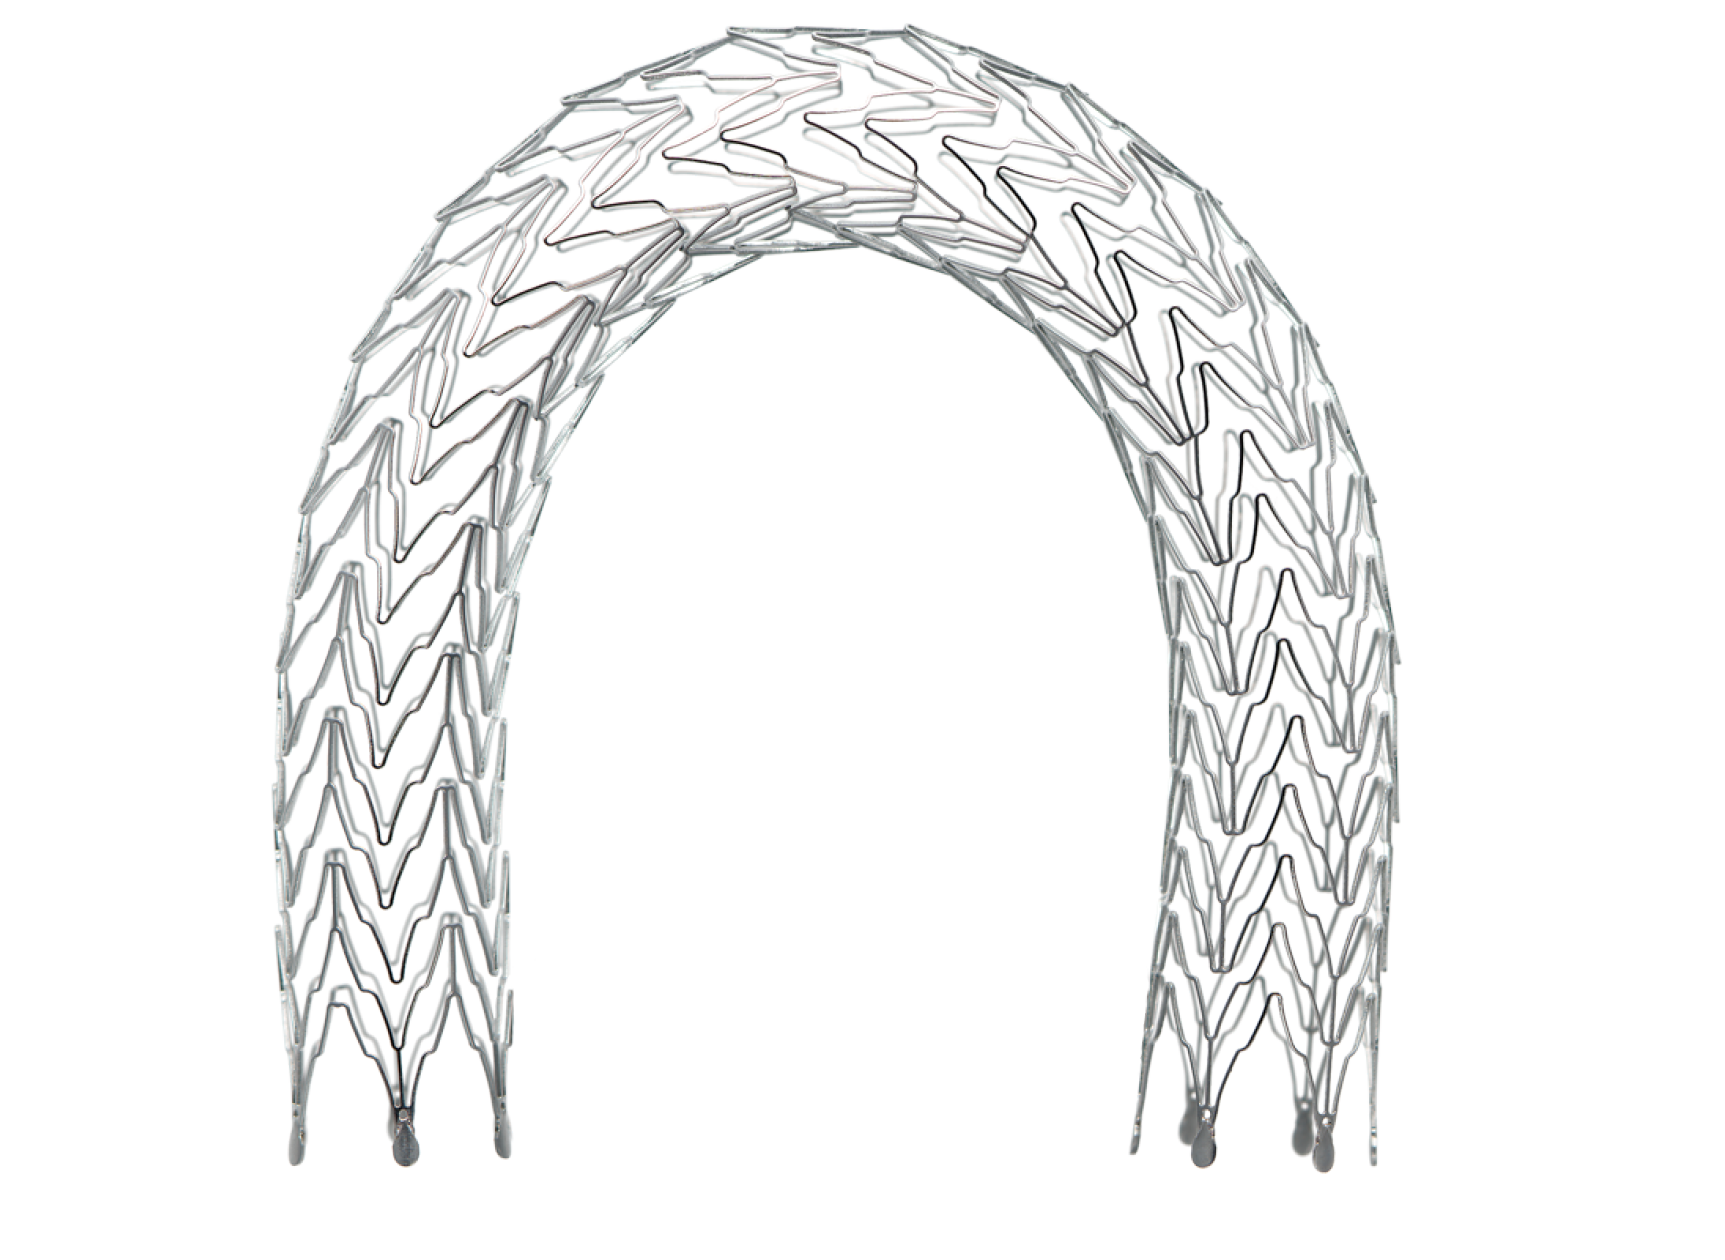 Absolute Pro Vascular Self-Expanding Stent System Design